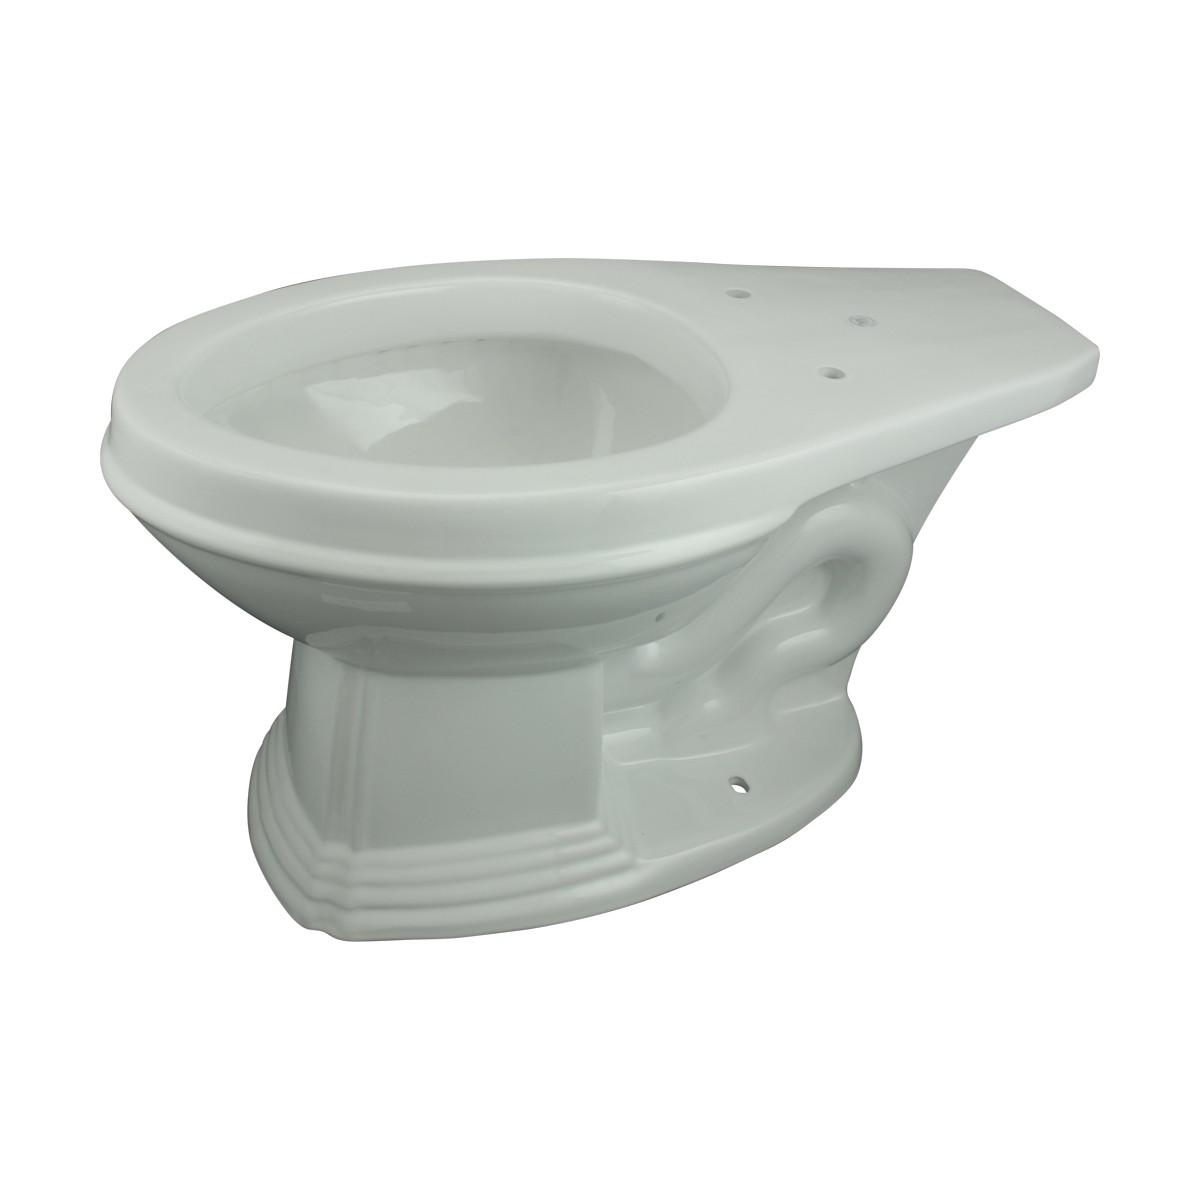 White Ceramic Tank High Tank Toilets With Elongated Bowl and Satin Finish L Pipe High Tank Pull Chain Toilets Elongated Bowl High Tank Toilet Old Fashioned Toilet